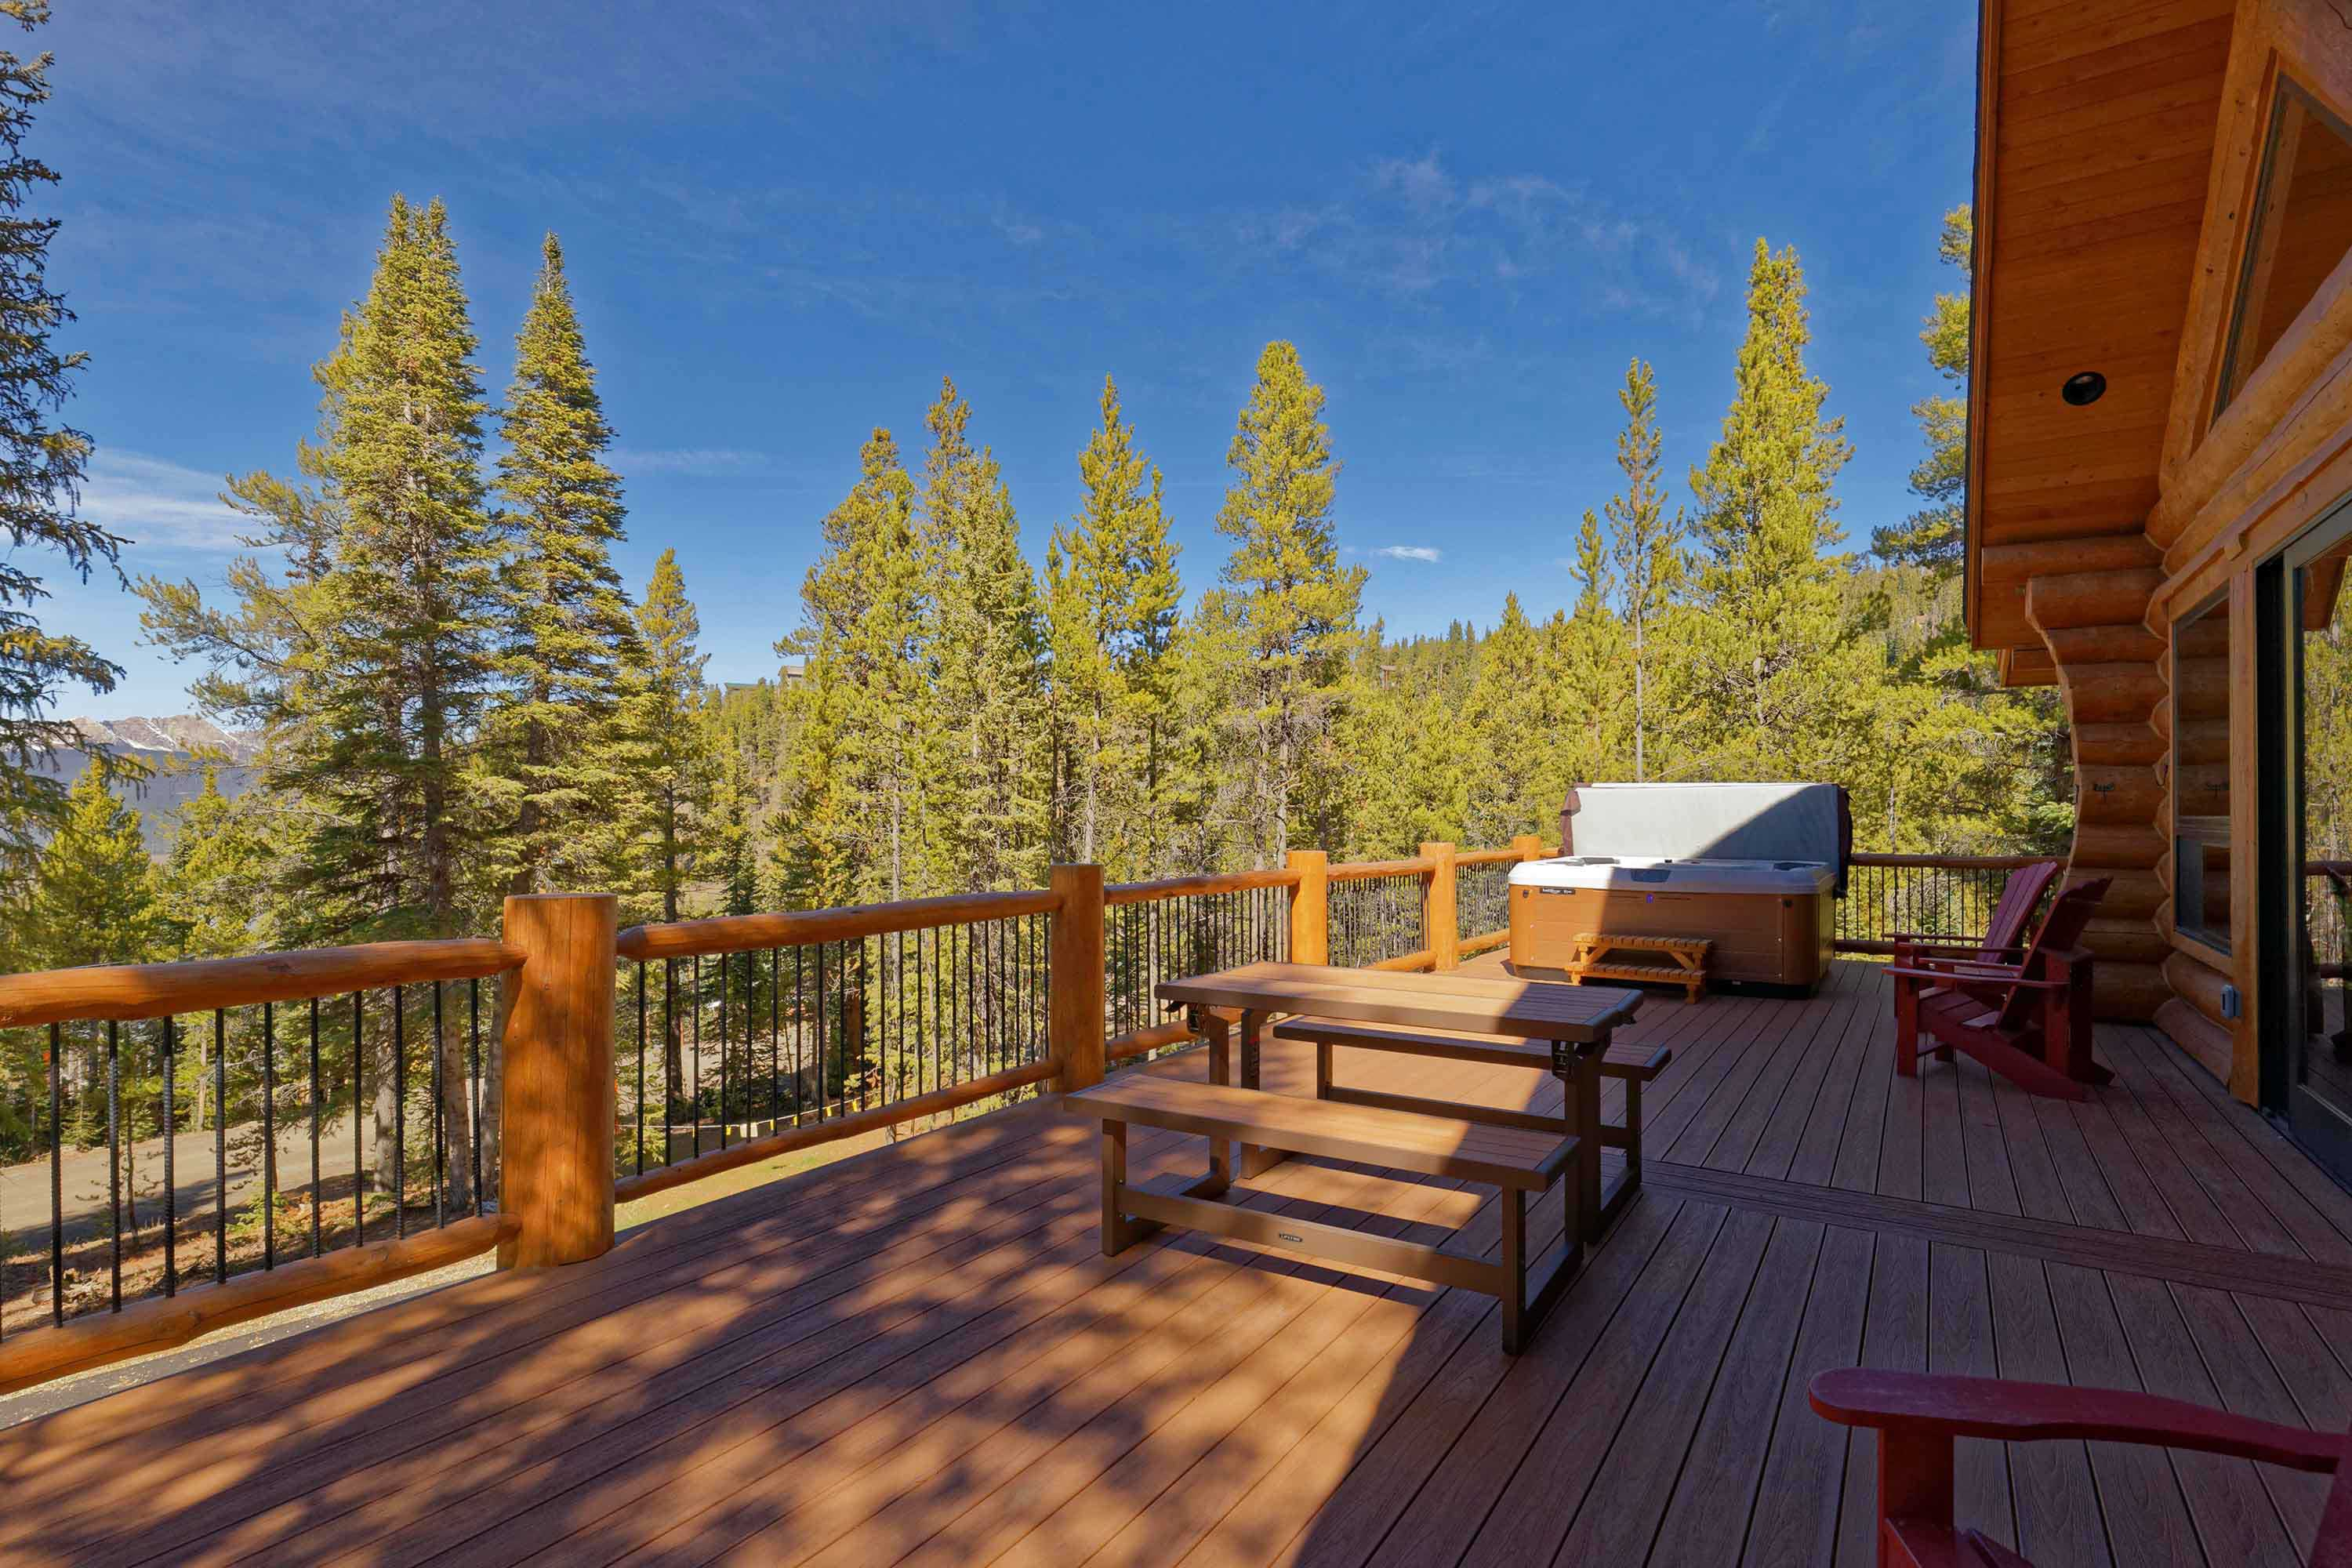 The large deck is truly one-of-a-kind.